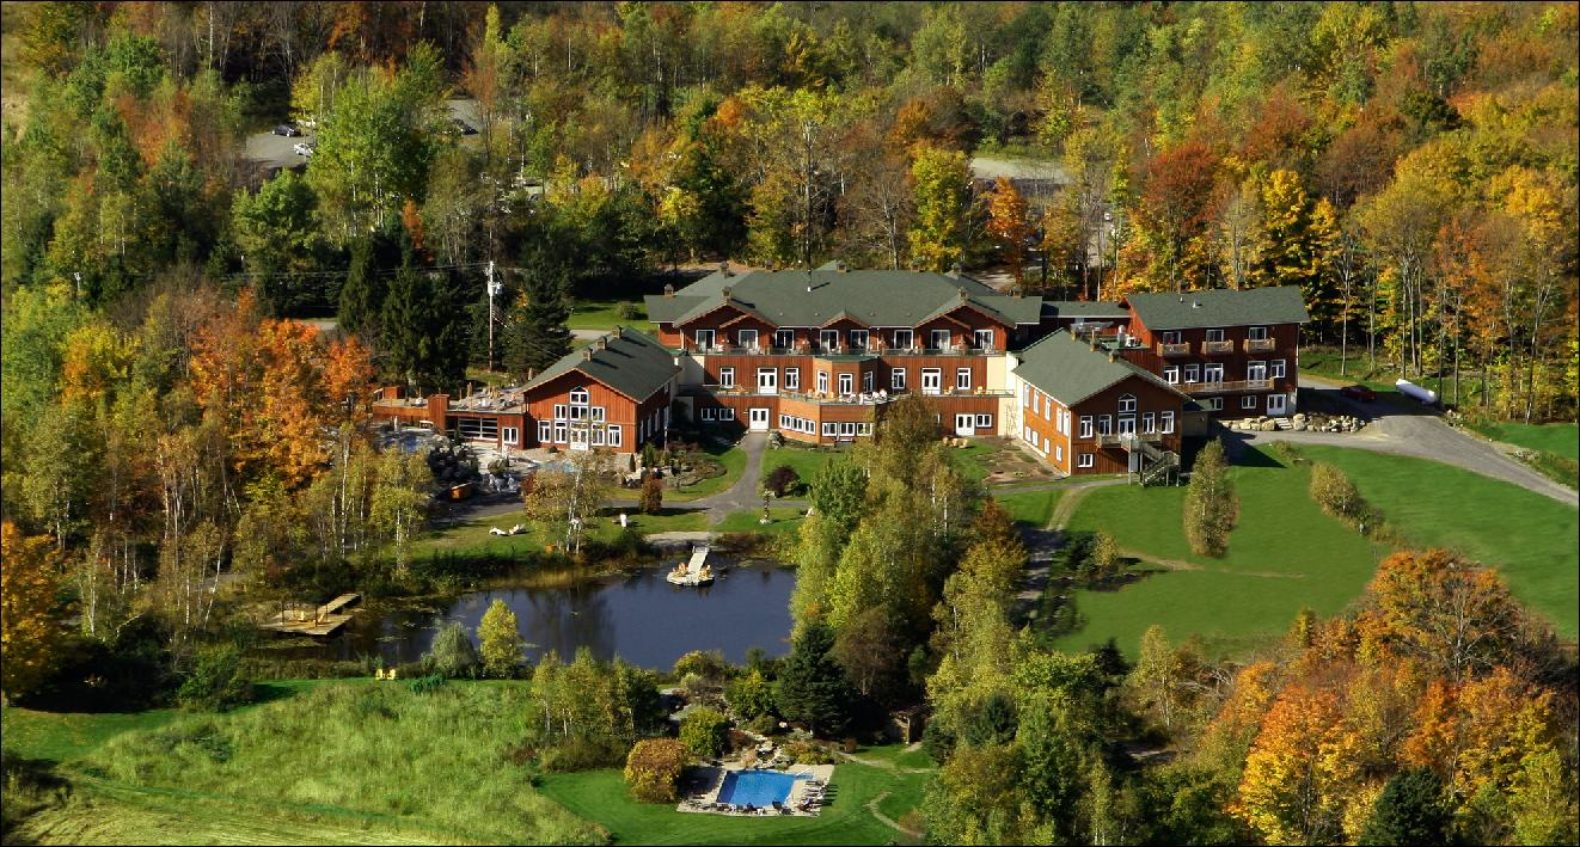 exterior-building-forest-lake-spa-eastman-hotel-canada